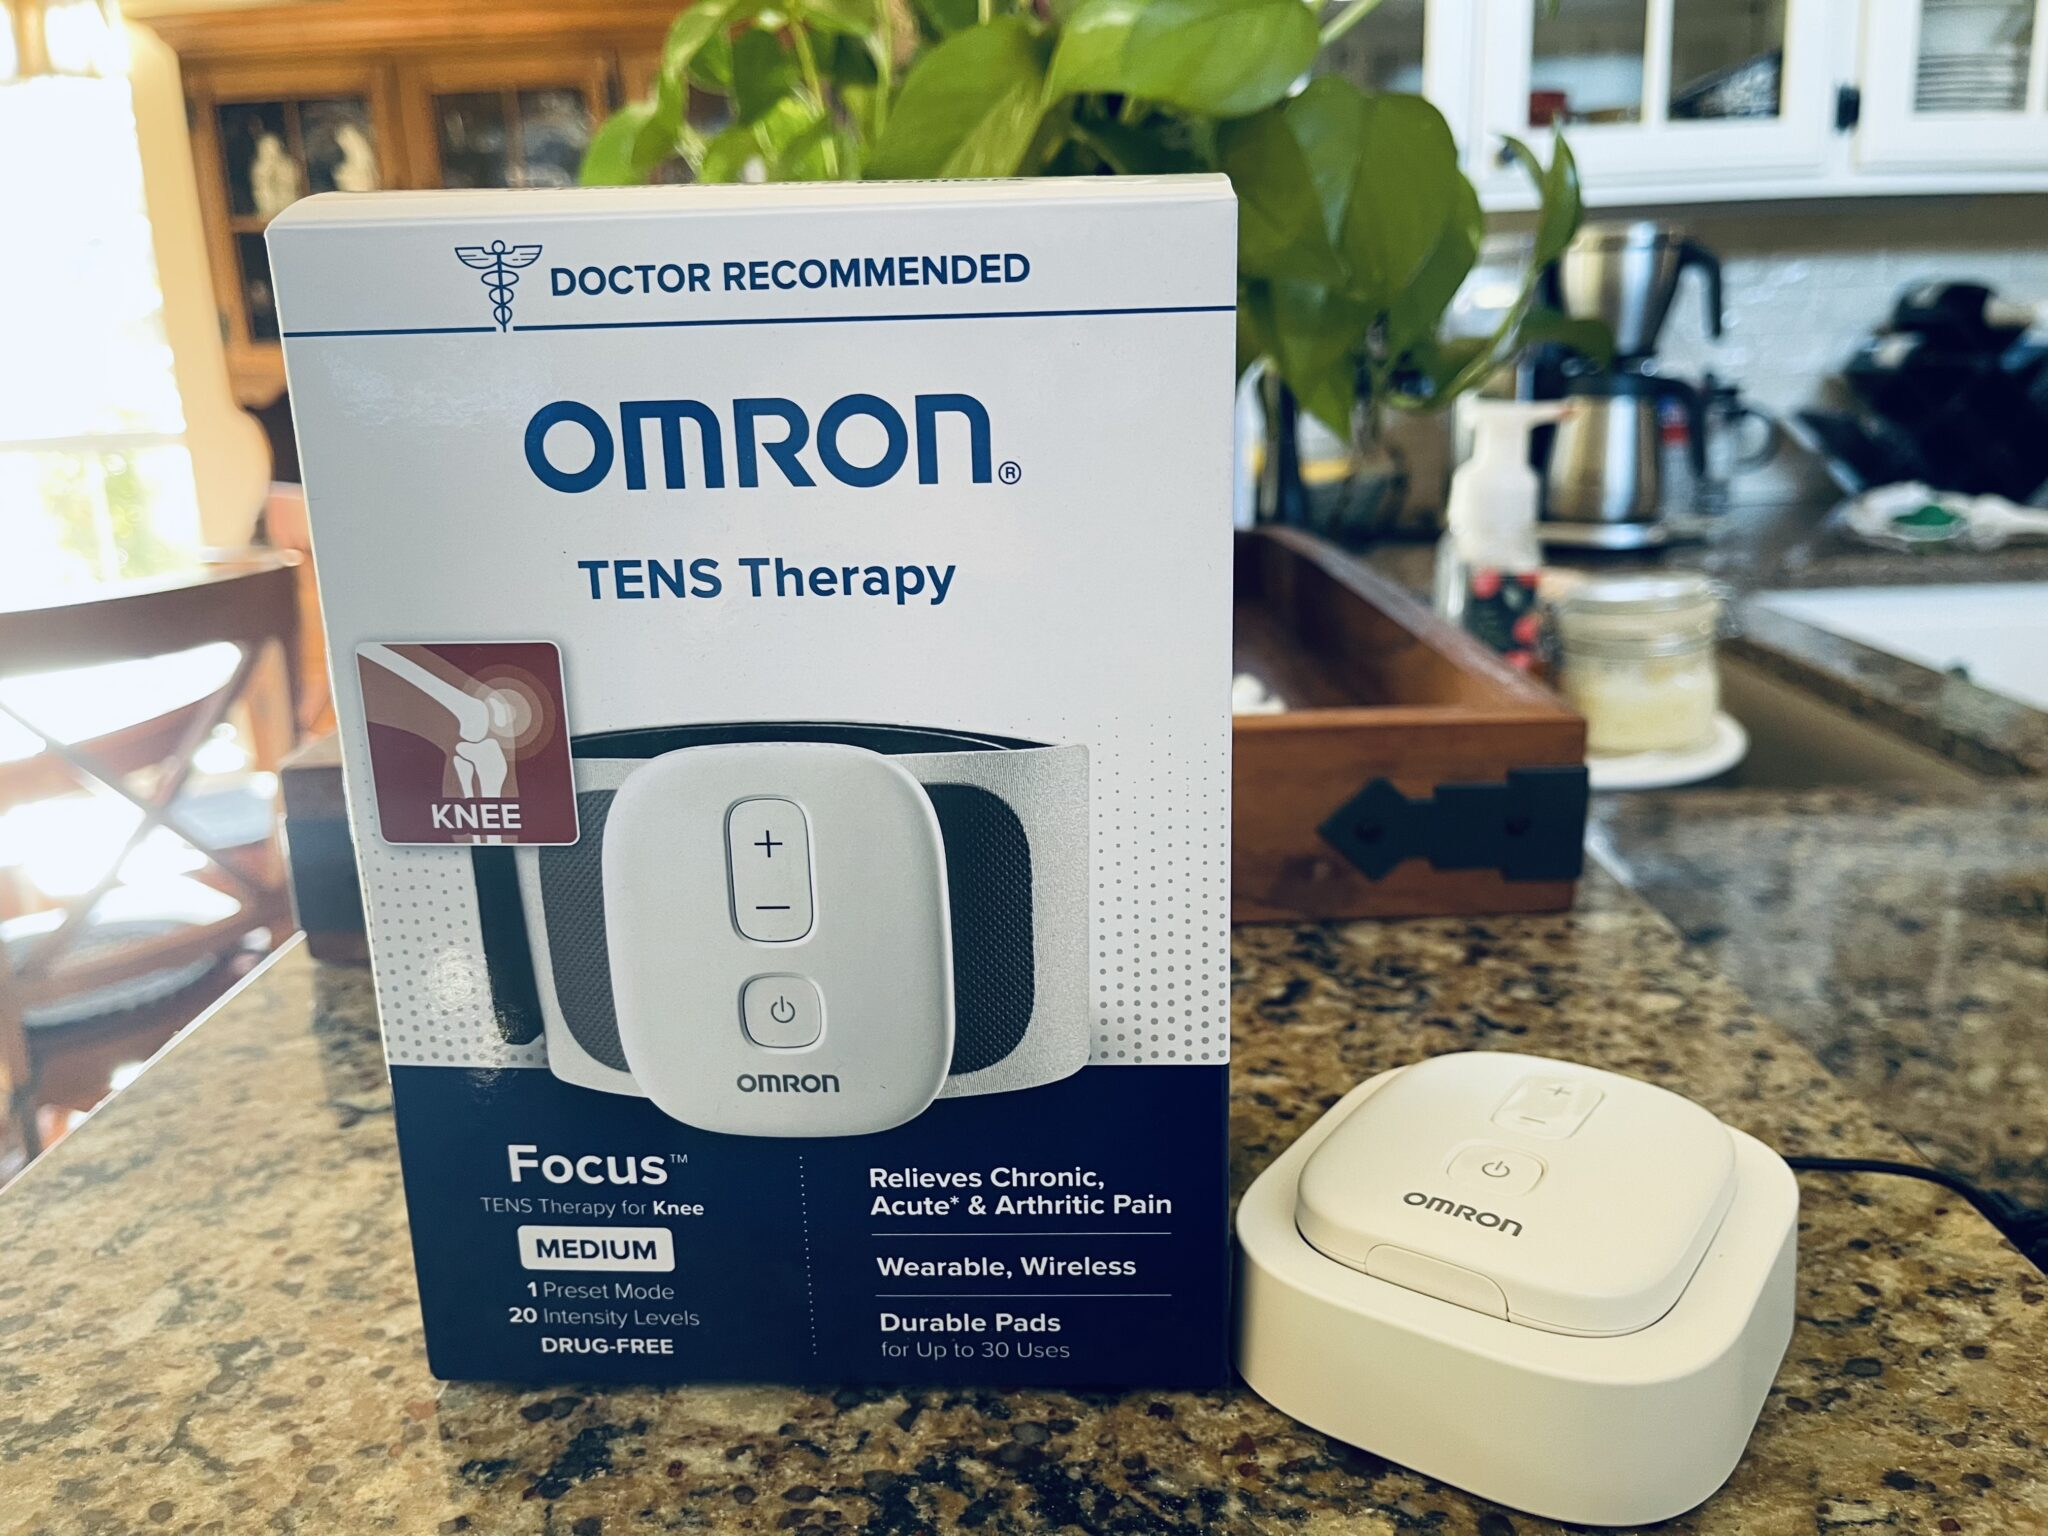 OMRON TENS THERAPY FOR Knees drug free pain relief